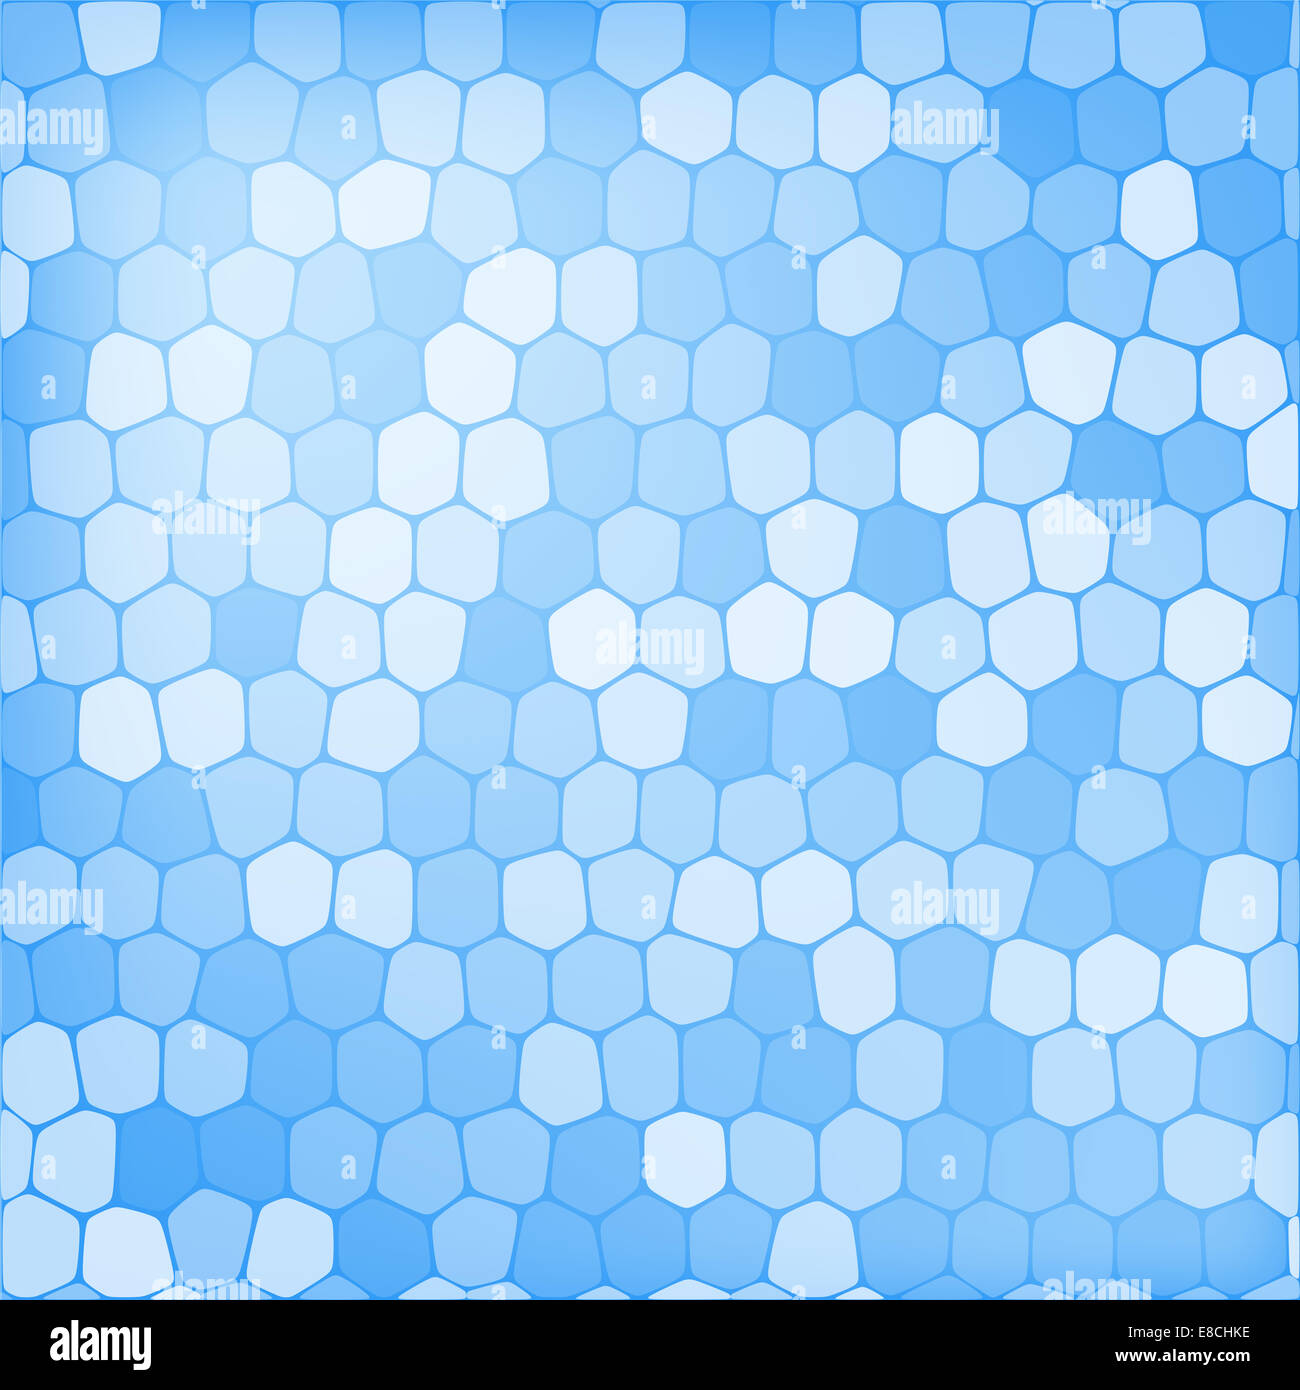 Abstract blue geometric background texture illustration - Stock Image